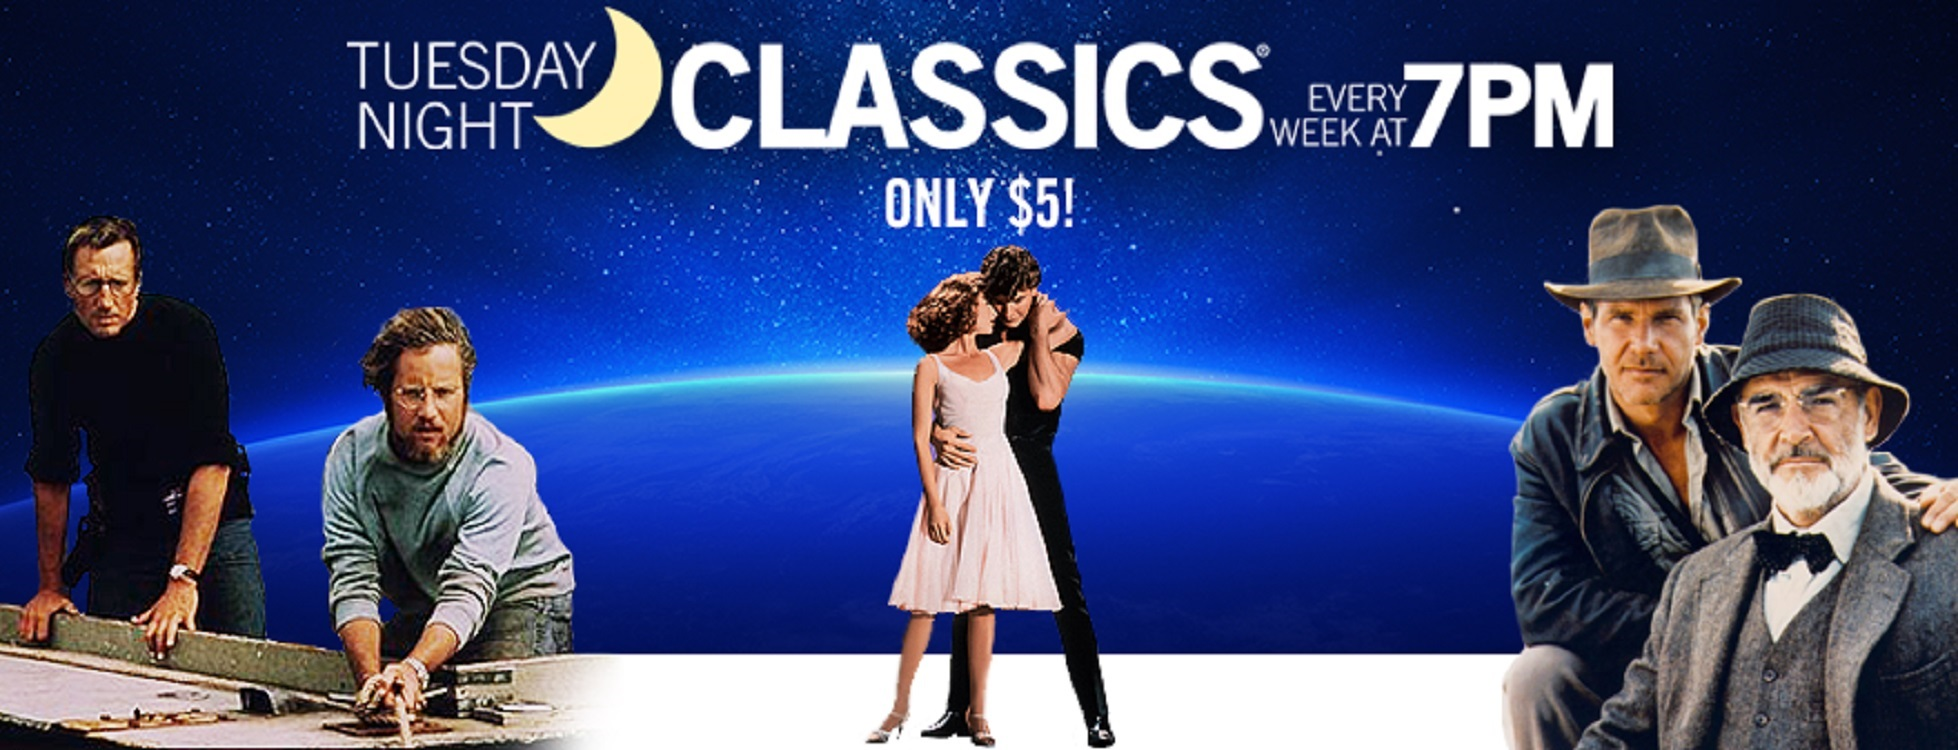 Ultimate Classics Return to the BIG Screen at Harkins Theatres